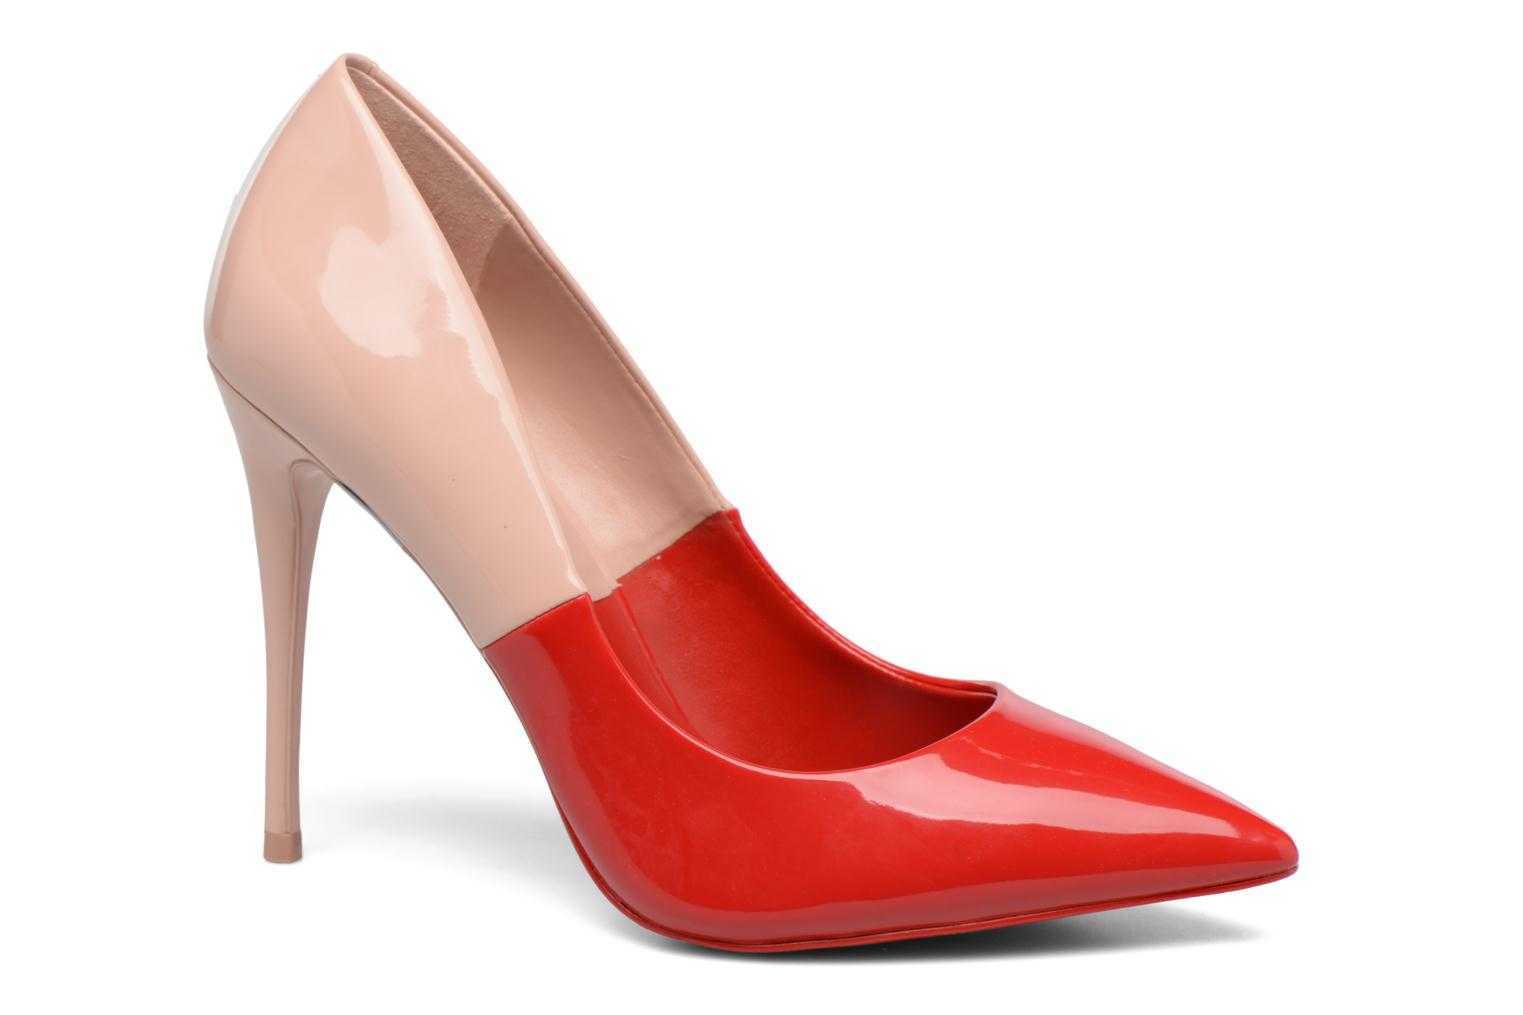 Marques Chaussure femme Aldo femme STESSY Red Nabuck63